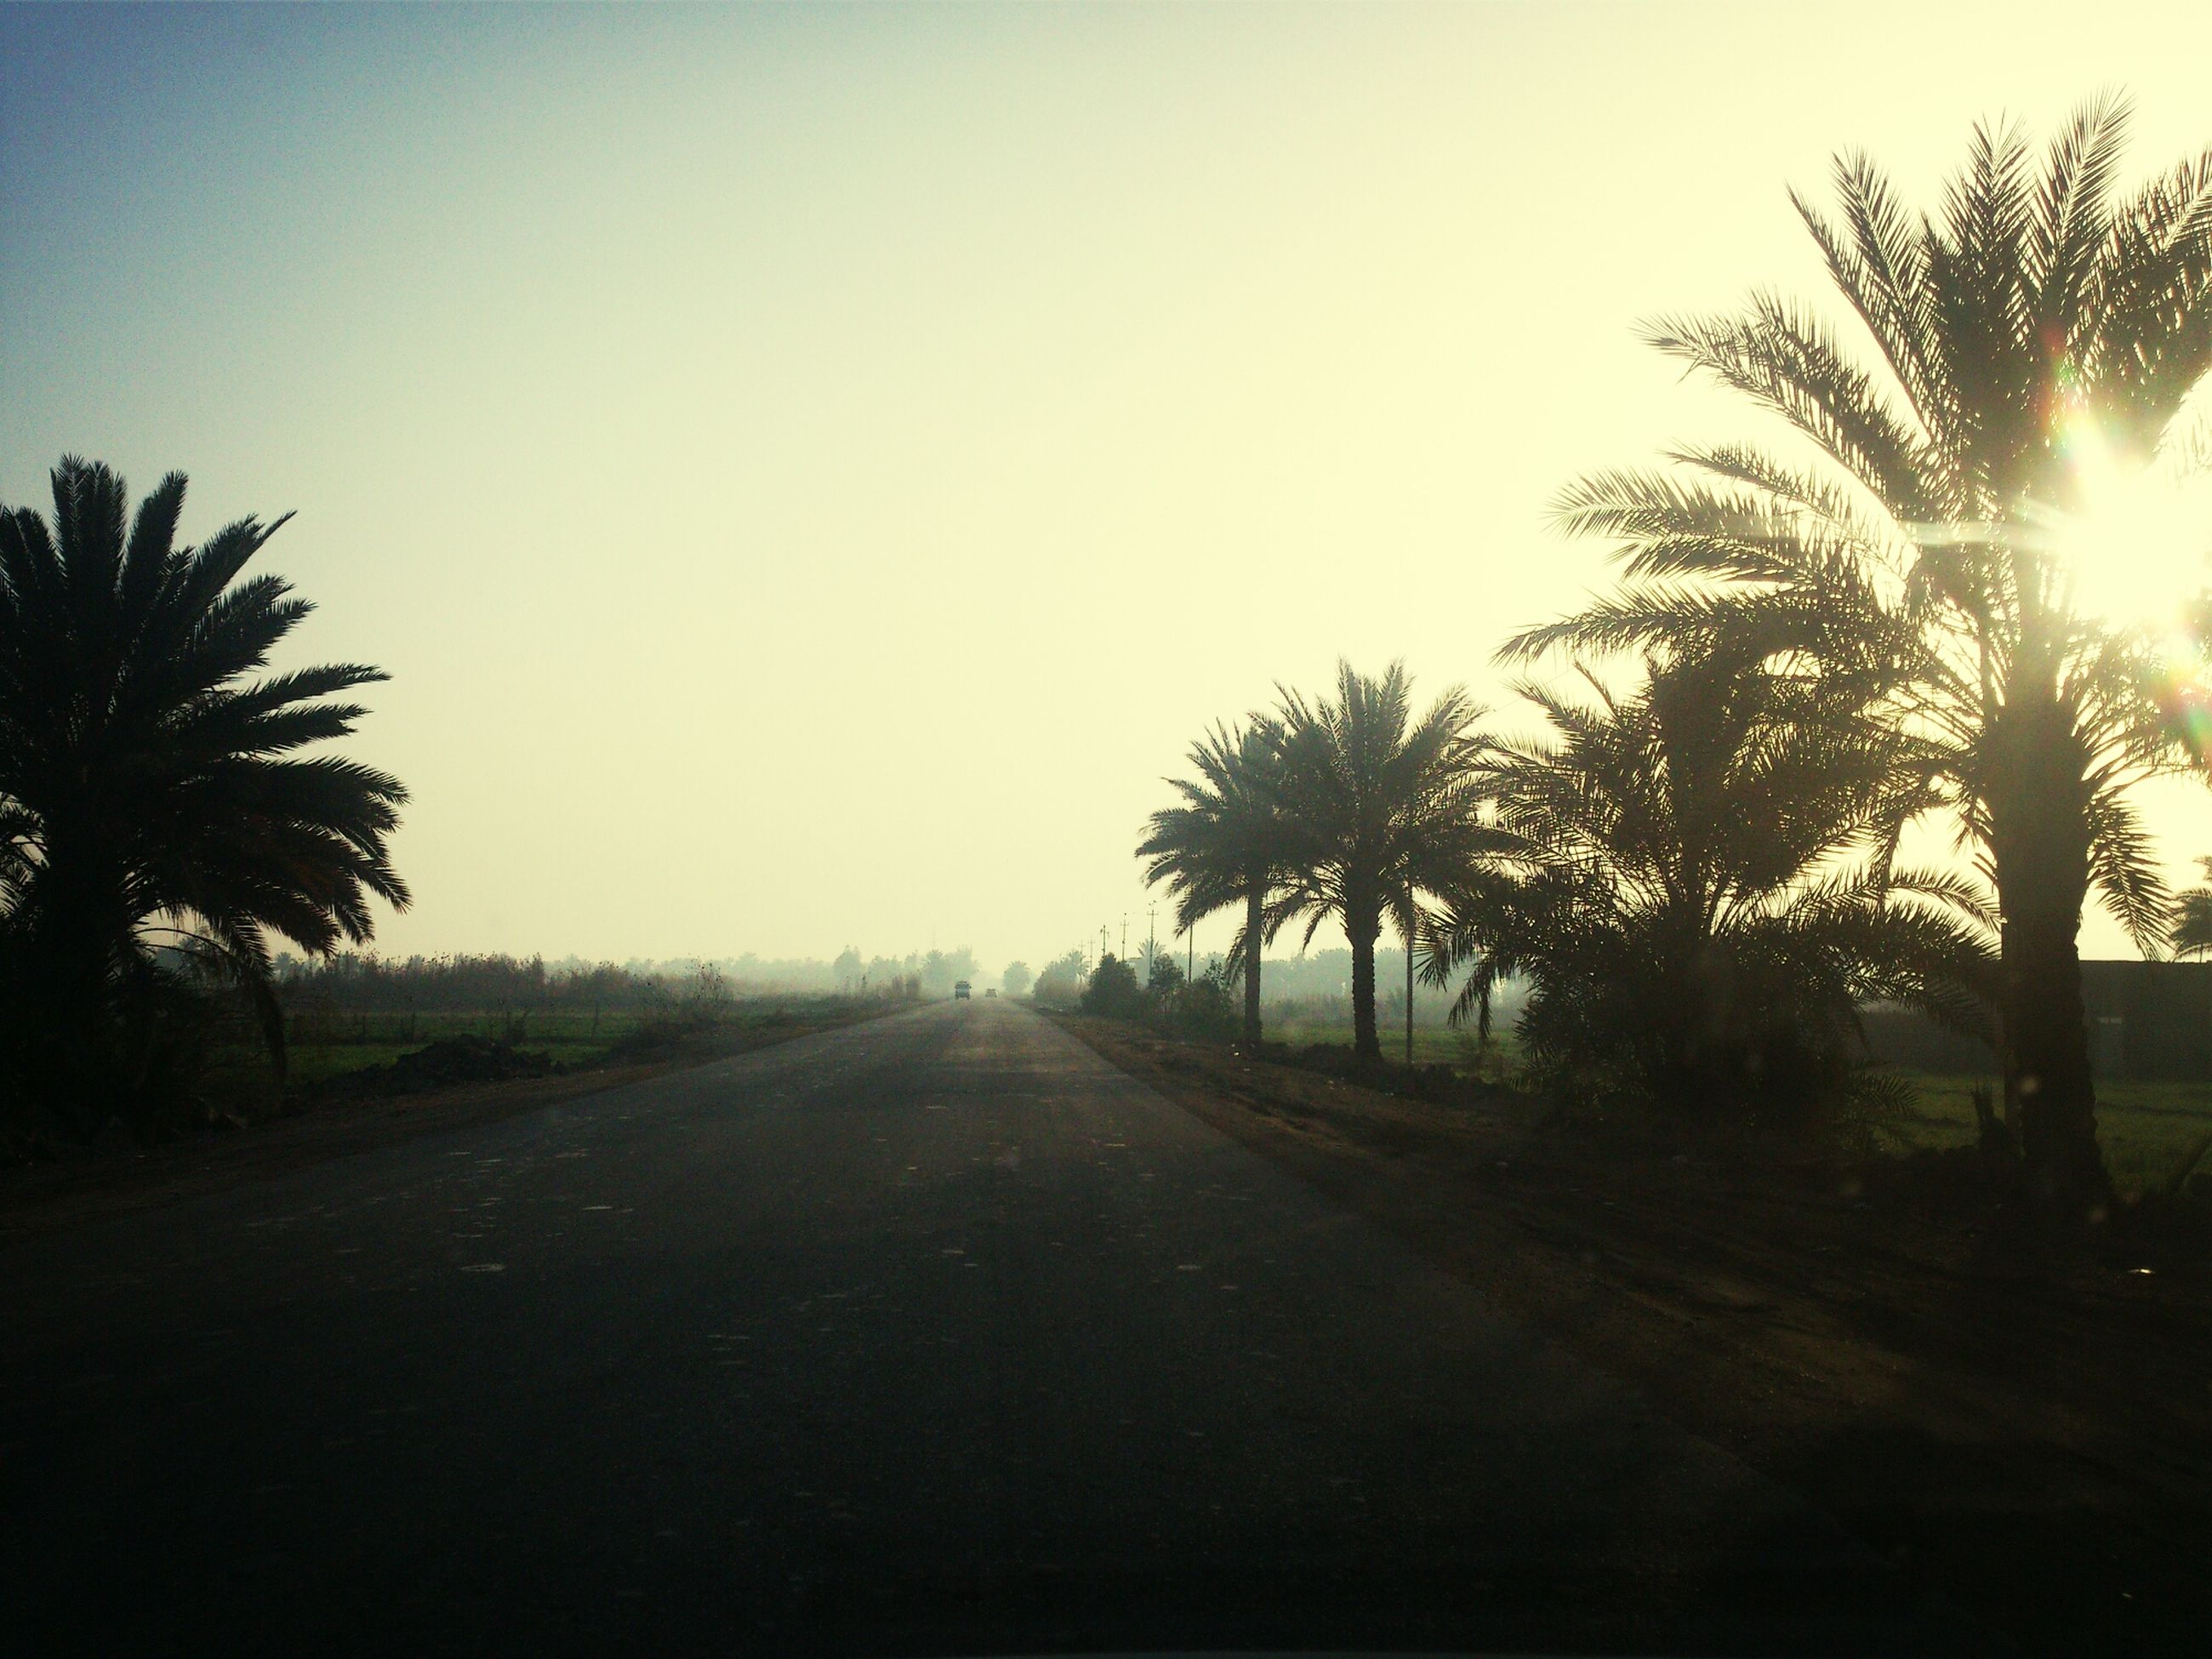 tree, the way forward, clear sky, road, transportation, sun, diminishing perspective, vanishing point, tranquility, silhouette, palm tree, tranquil scene, sunlight, sunset, nature, copy space, country road, growth, lens flare, landscape